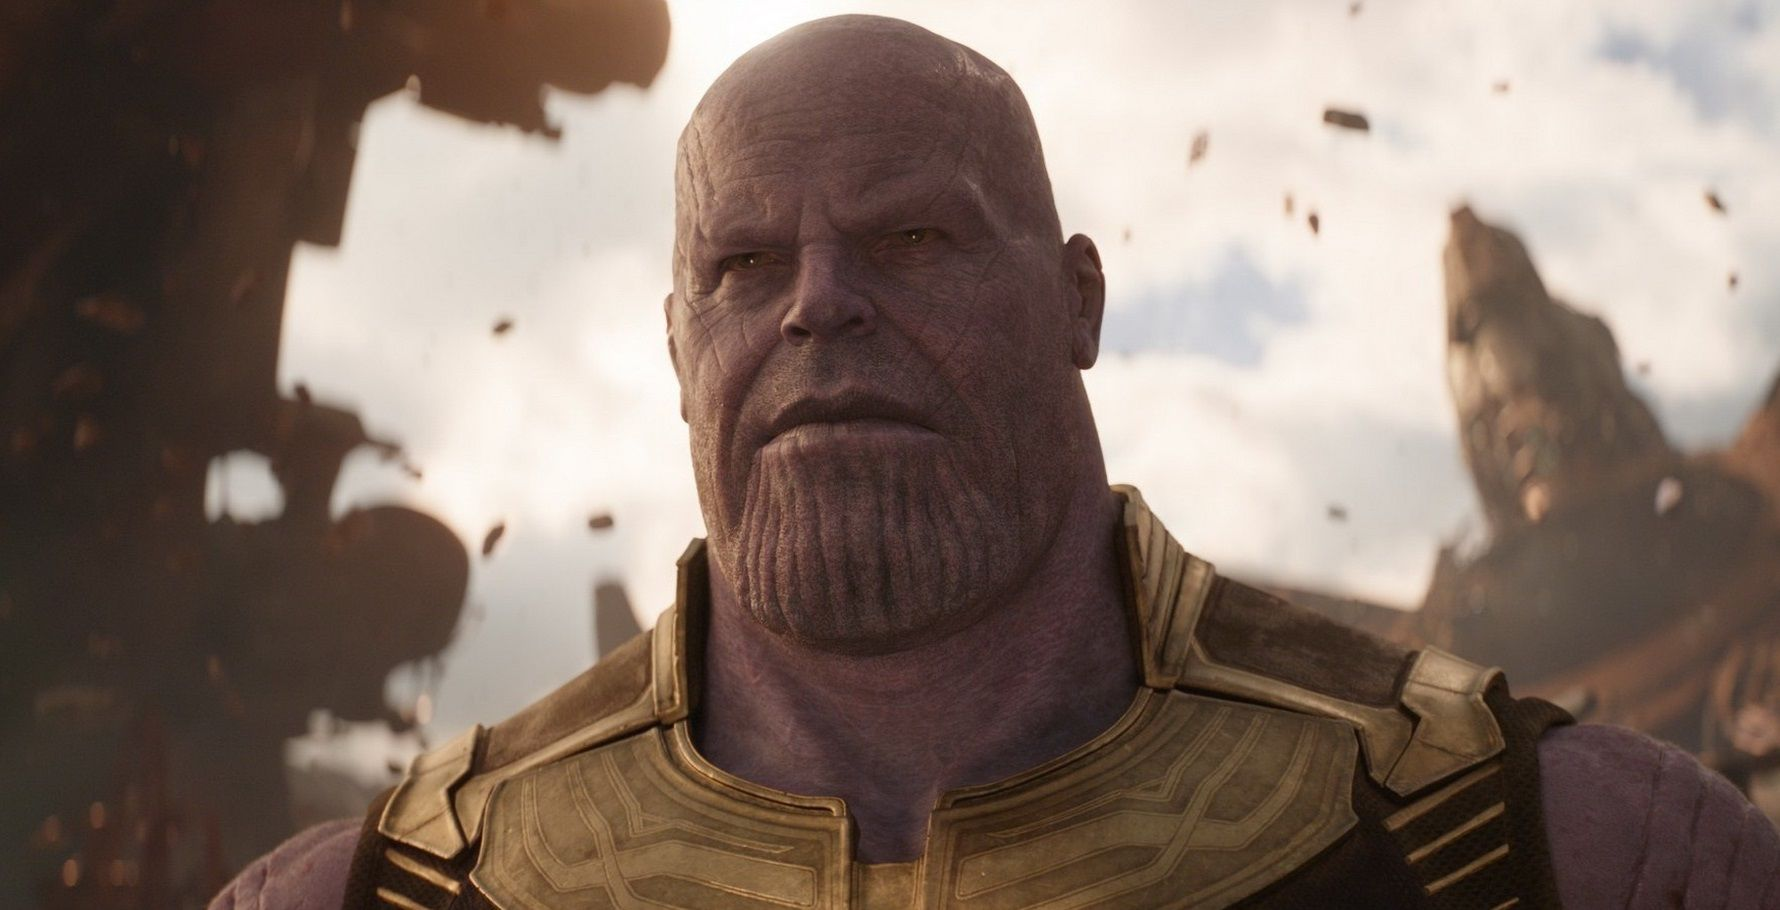 Early Thanos Concept Art Leaned Into Idea of the Titan as a Religious Leader